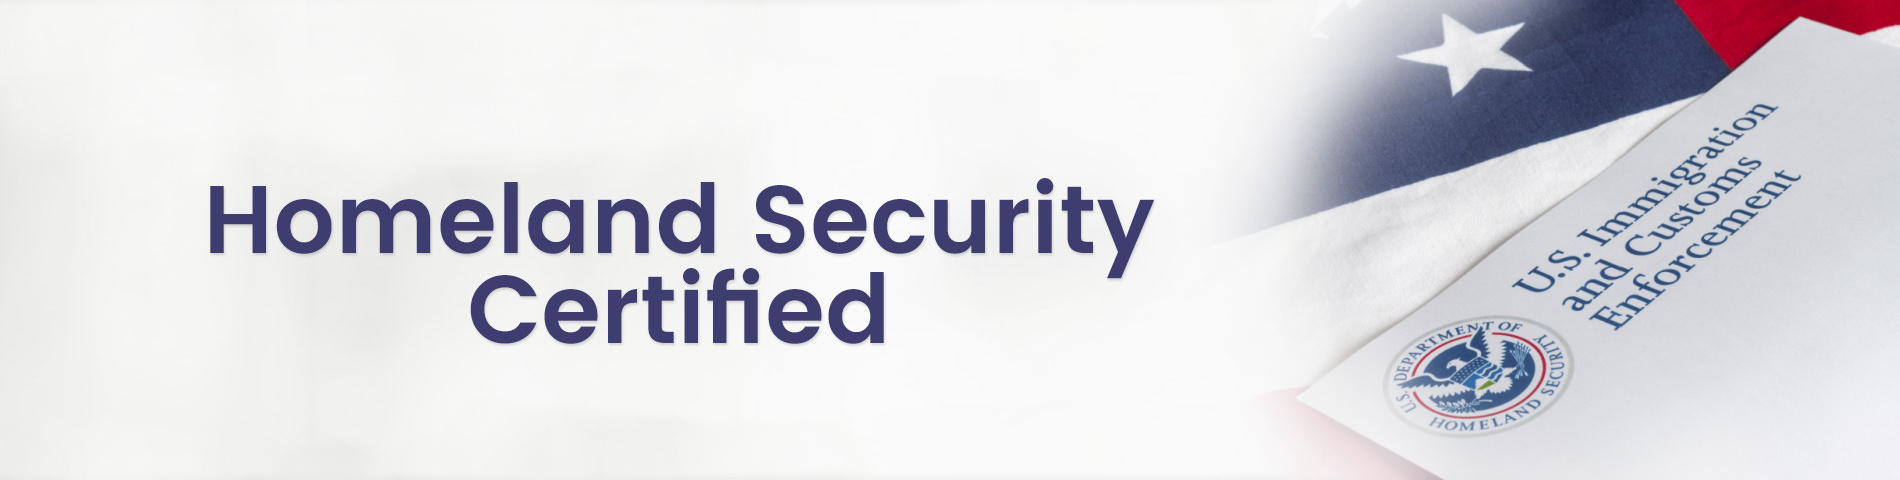 Homeland Security Certified